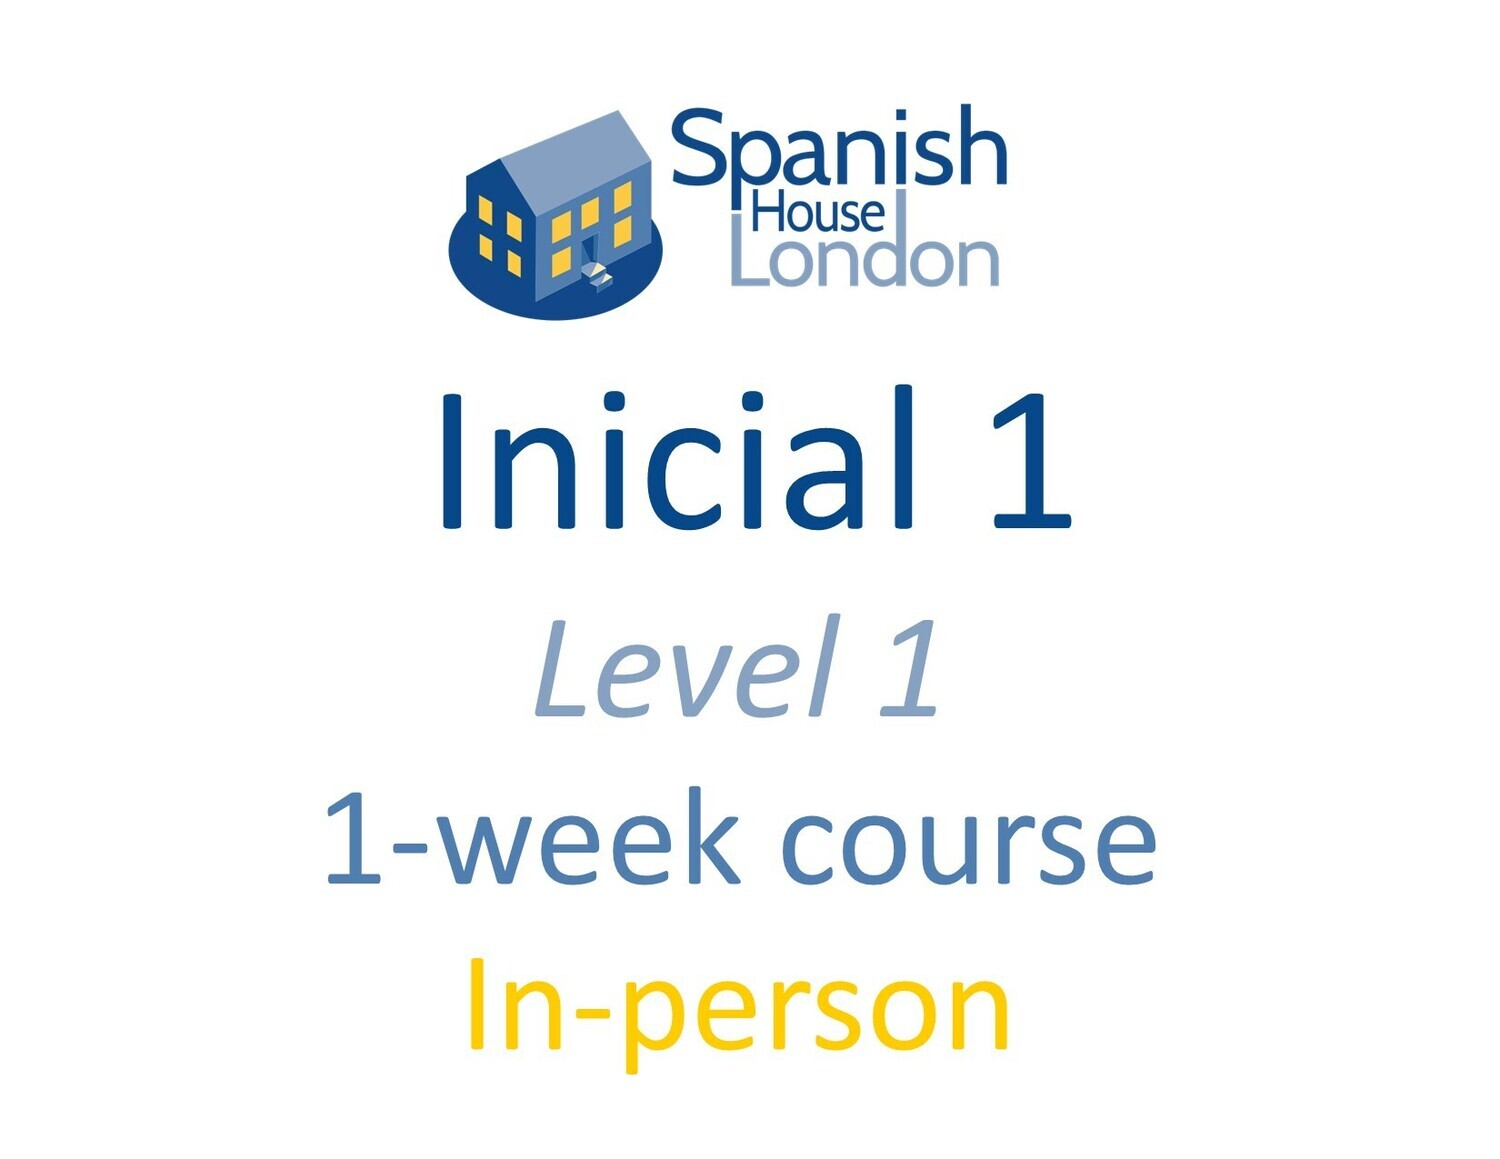 One-Week Intensive Inicial 1 Course starting on 27th September at 10am in Clapham North